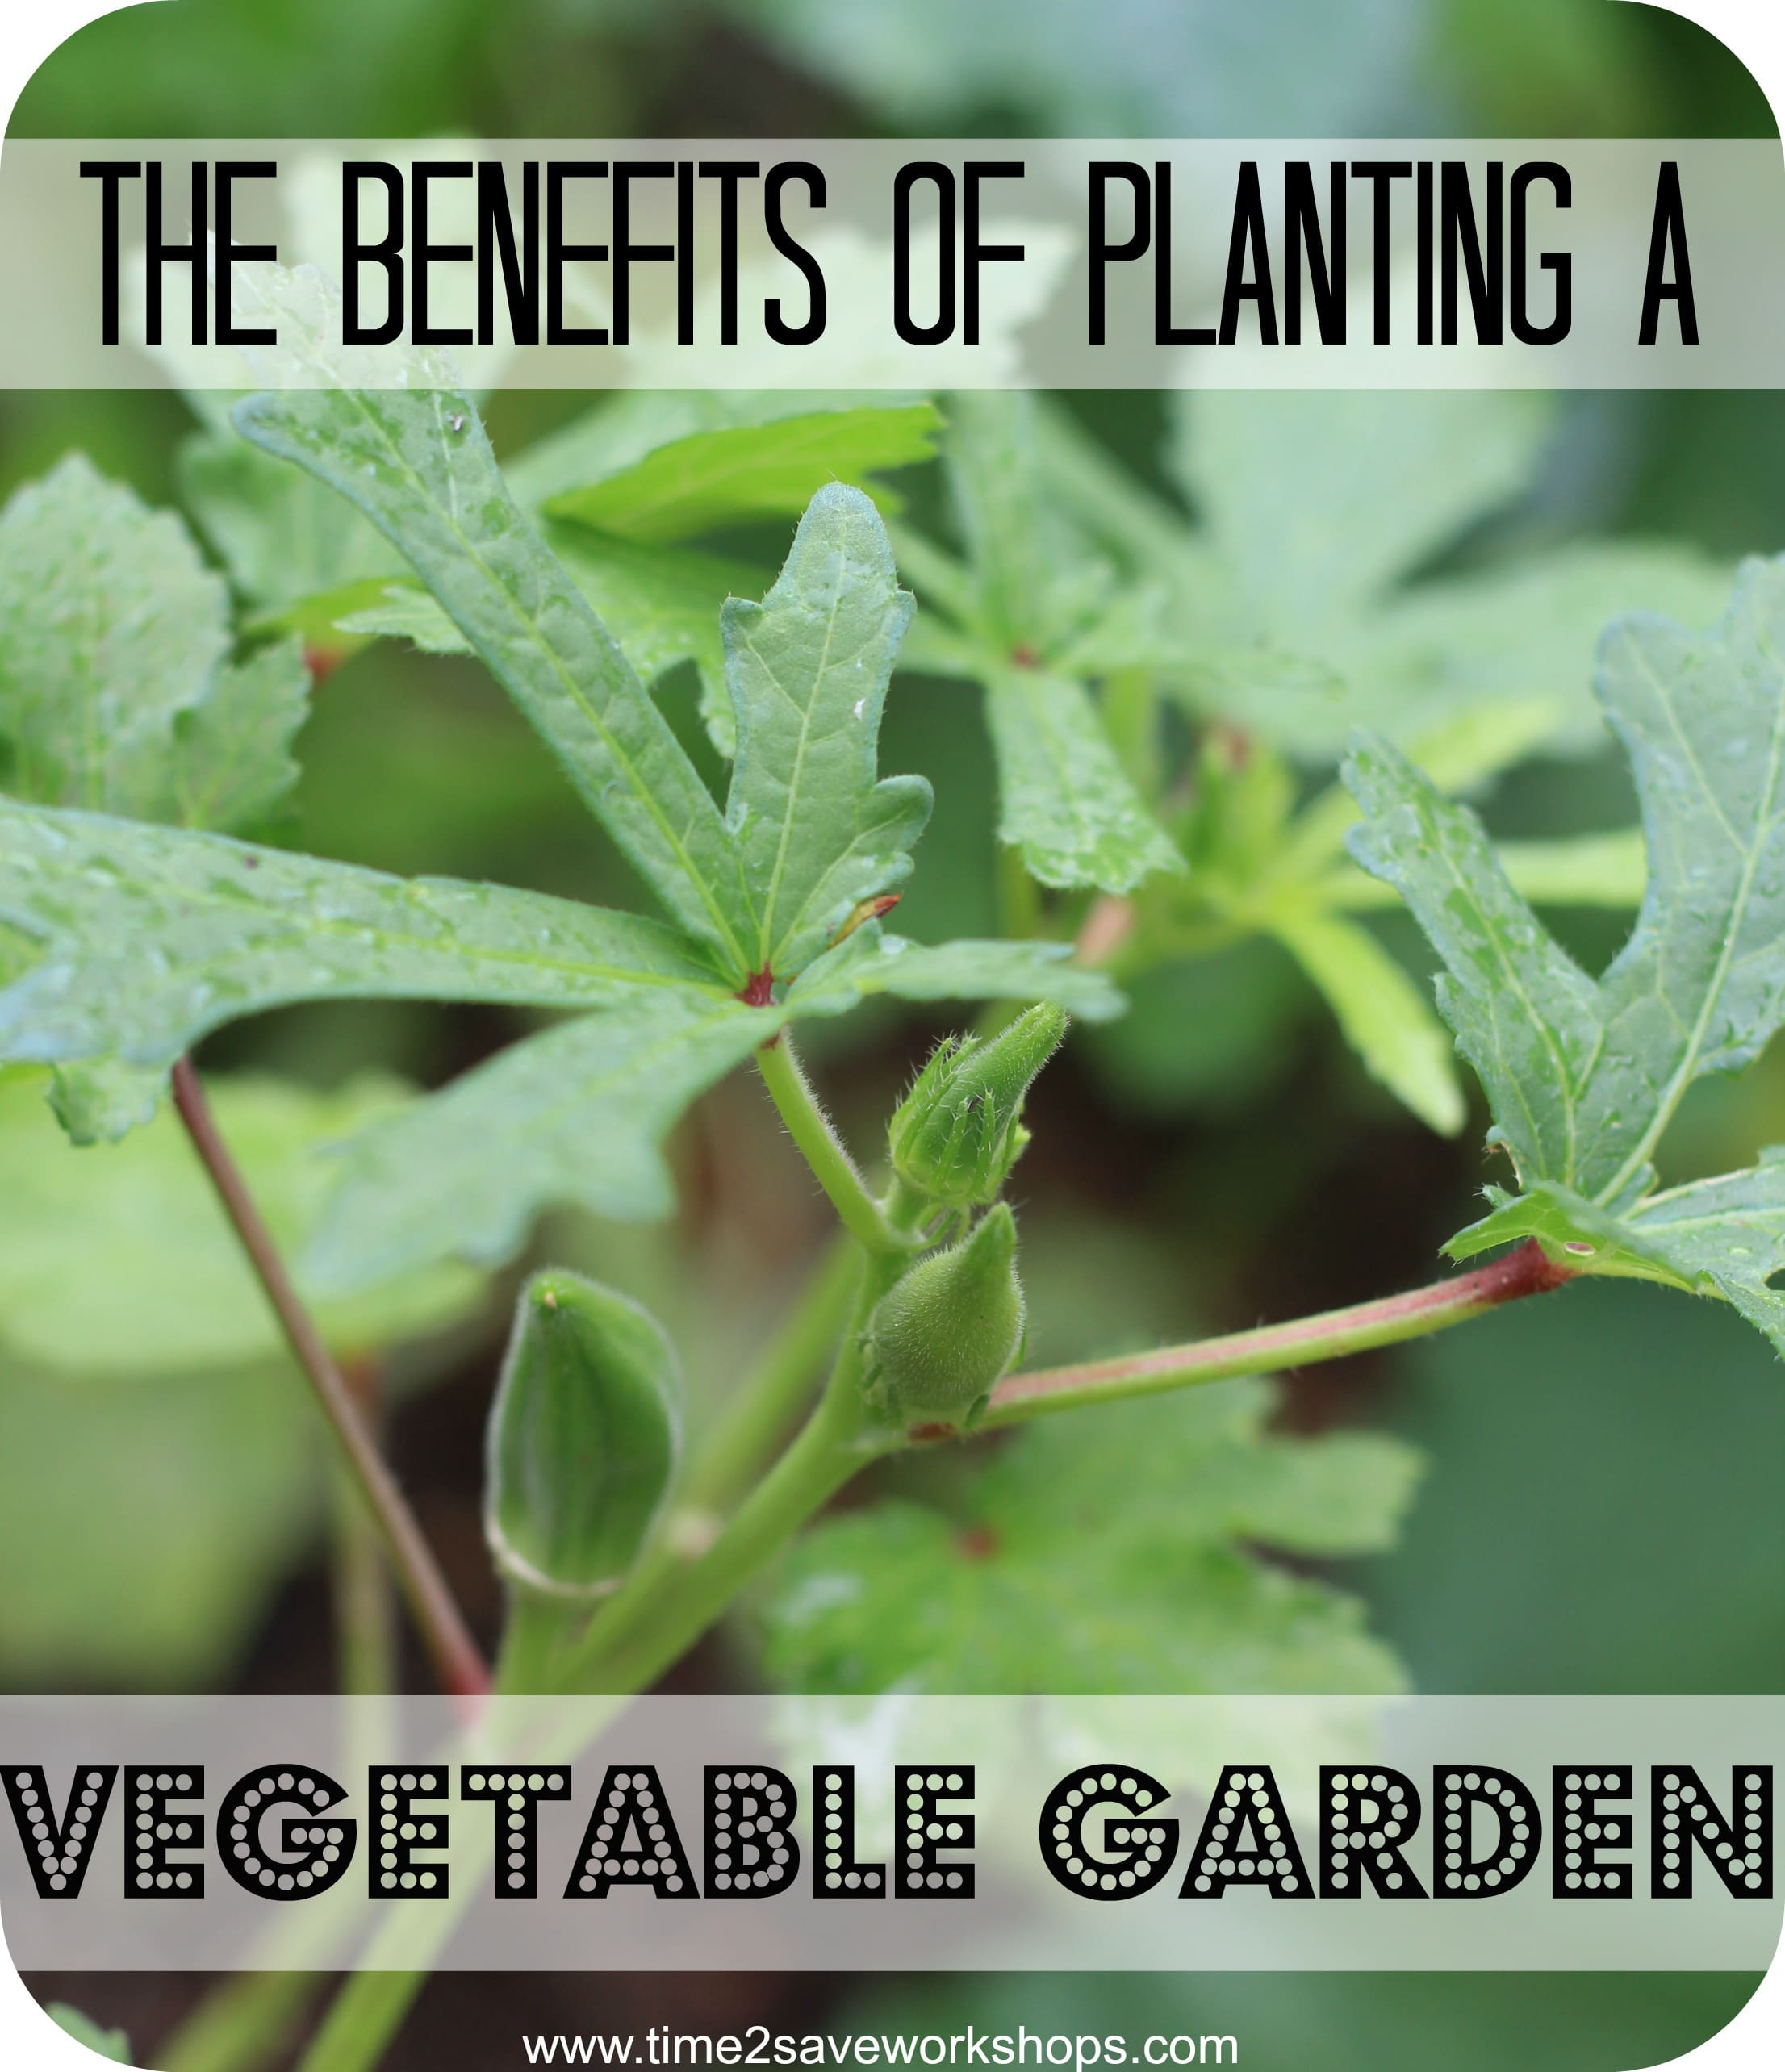 Benefits-of-planting-a-vegetable-garden1